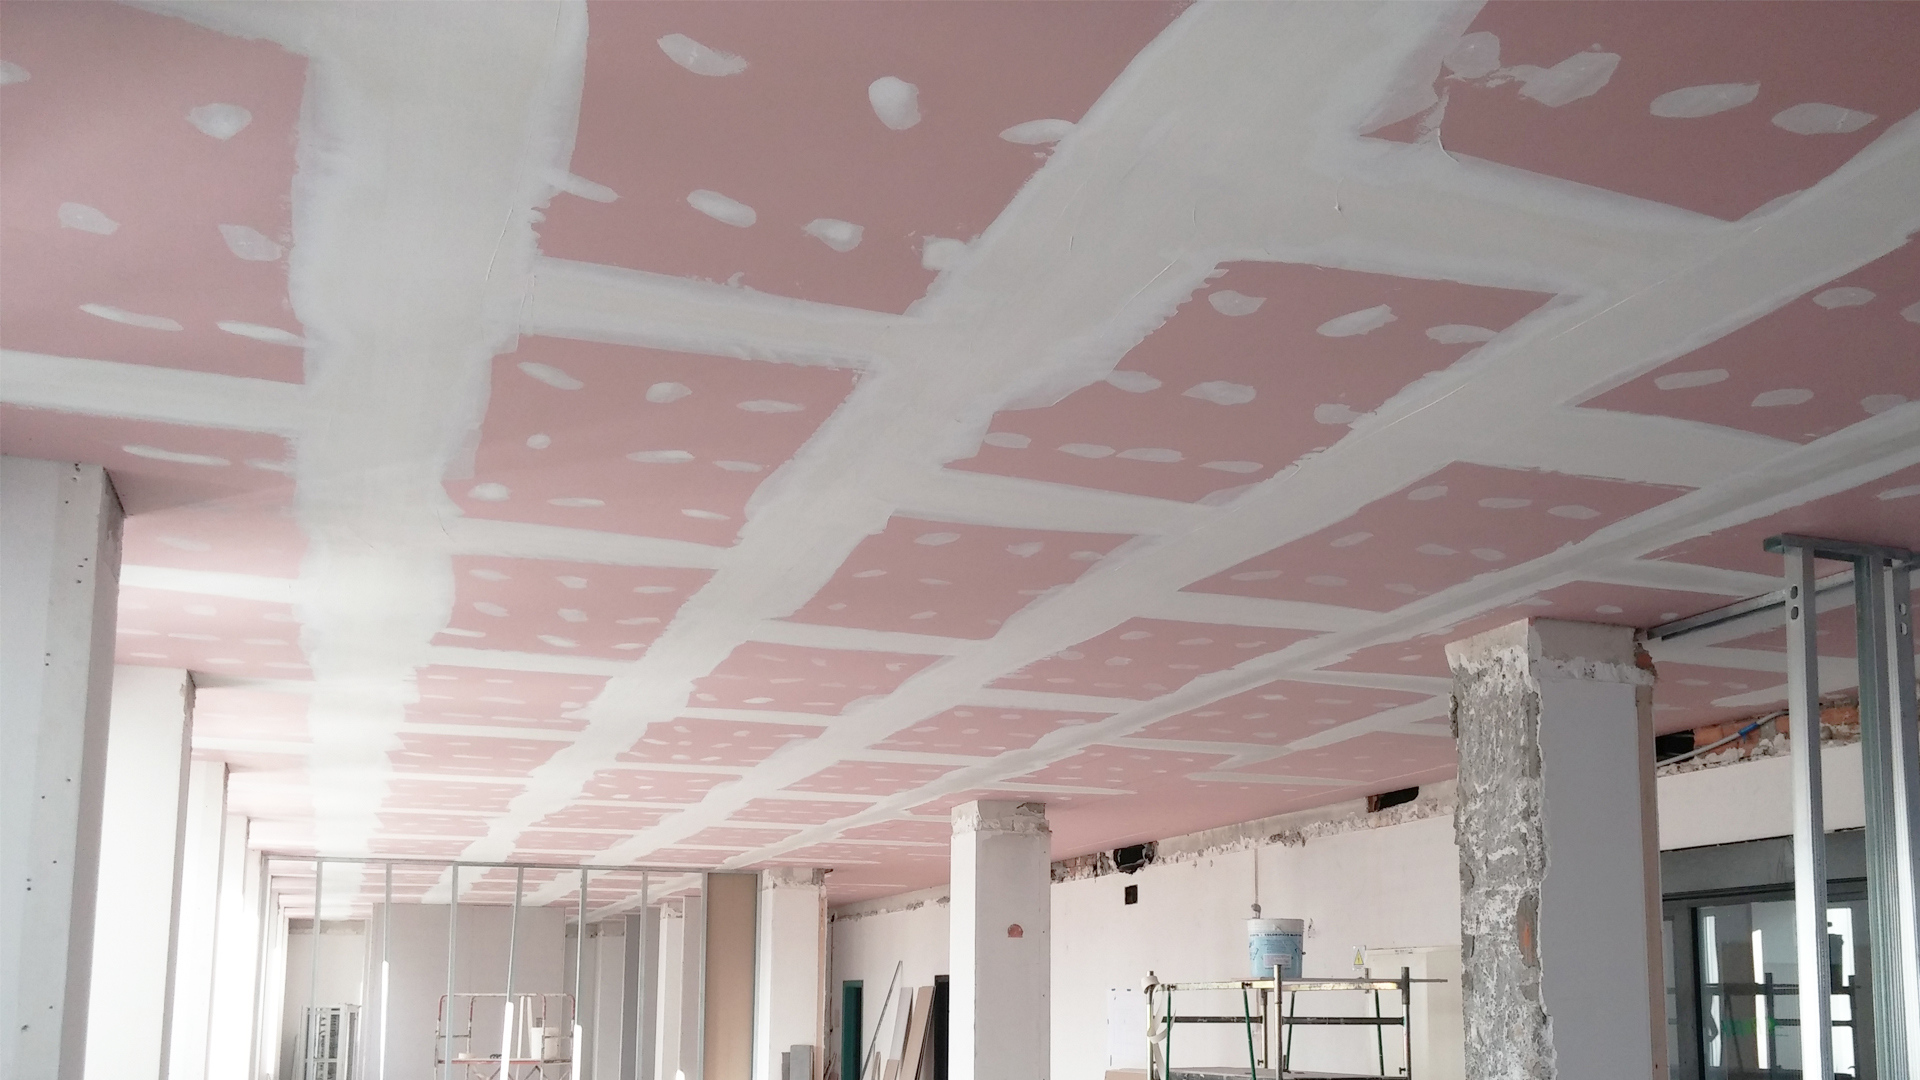 RIQUALIFICAZIONE SOFFITTO IN LATERO-CEMENTO CON CONTROSOFFITTO REI 120 in ADERENZA